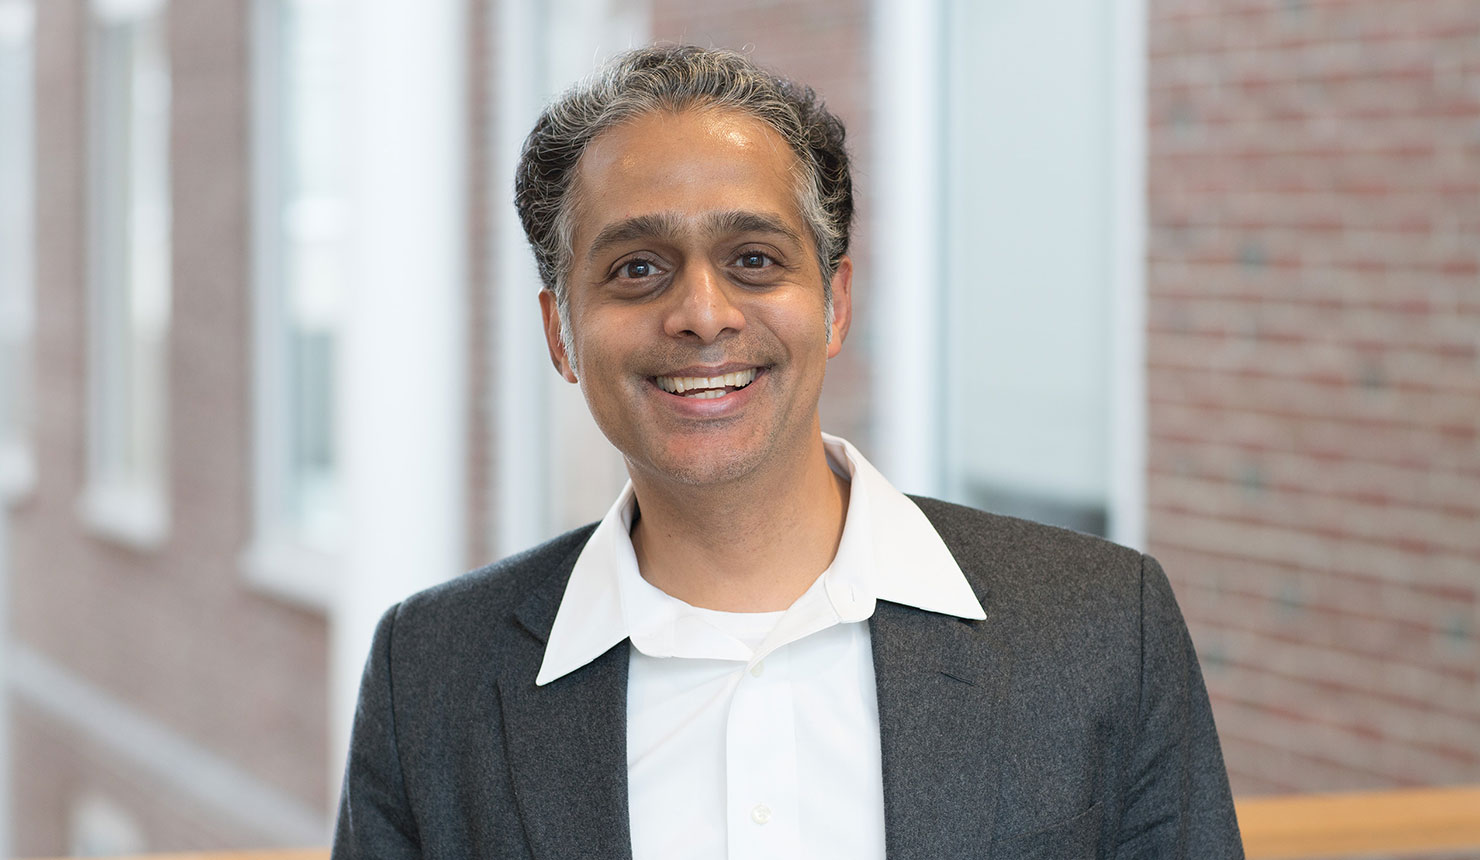 Rahul Sarpeshka, PhD (Photo: Dartmouth College / Eli Burakian)